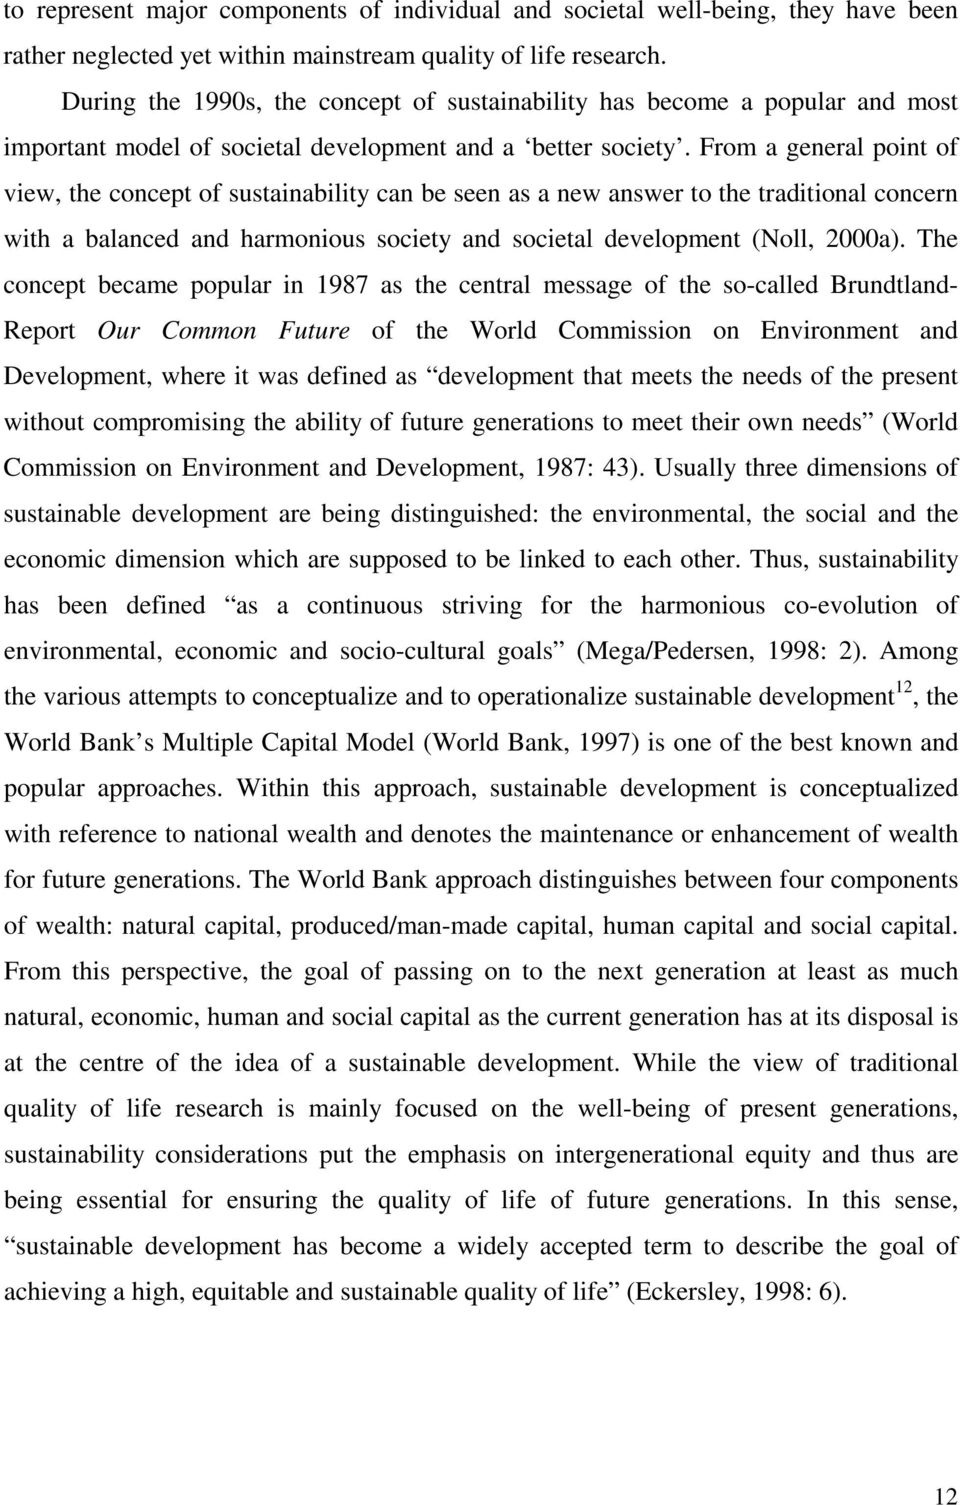 From a general point of view, the concept of sustainability can be seen as a new answer to the traditional concern with a balanced and harmonious society and societal development (Noll, 2000a).